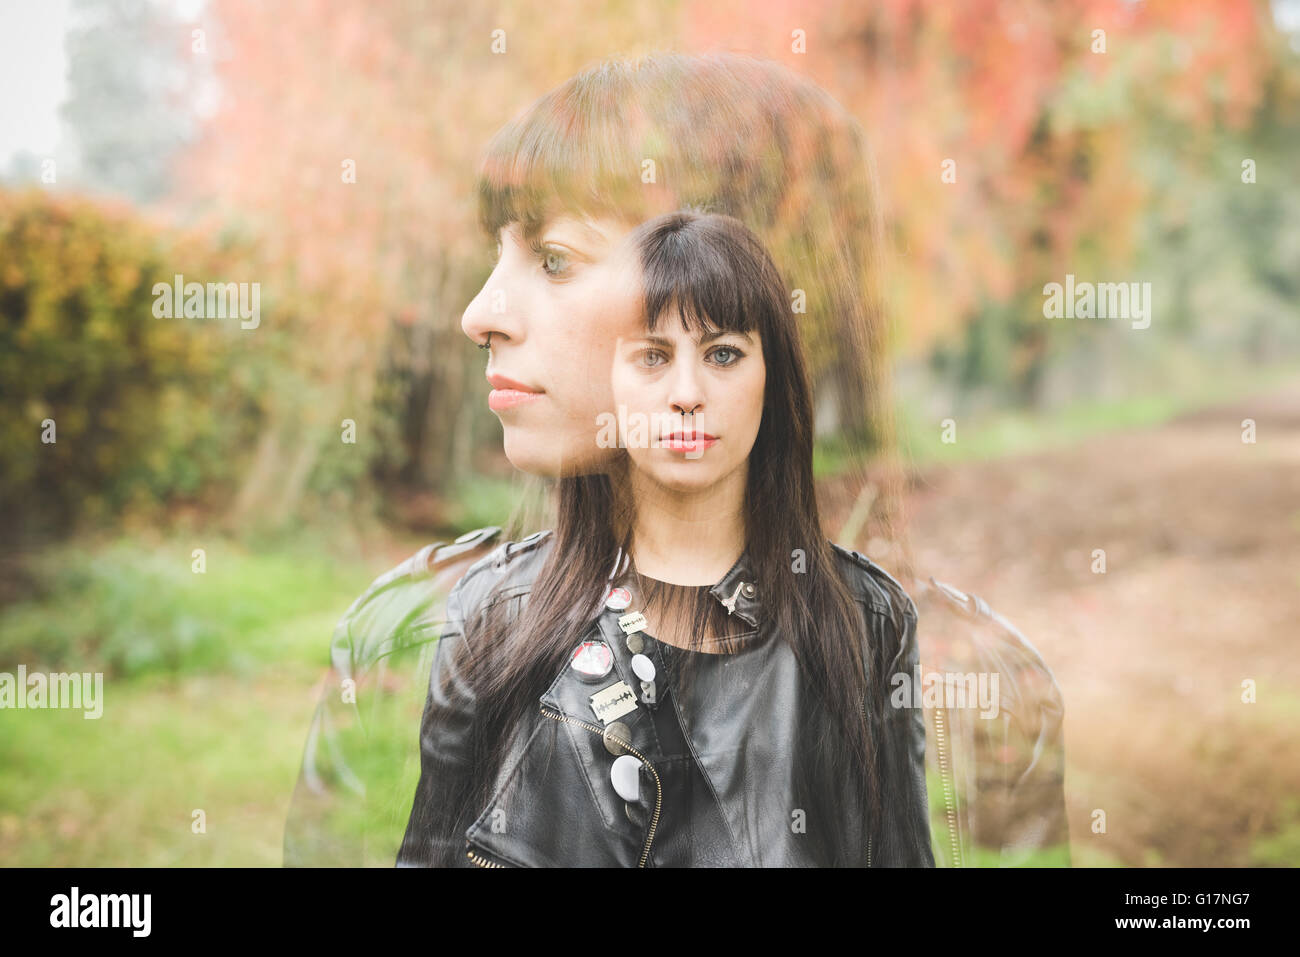 Double image of young woman outdoors - Stock Image